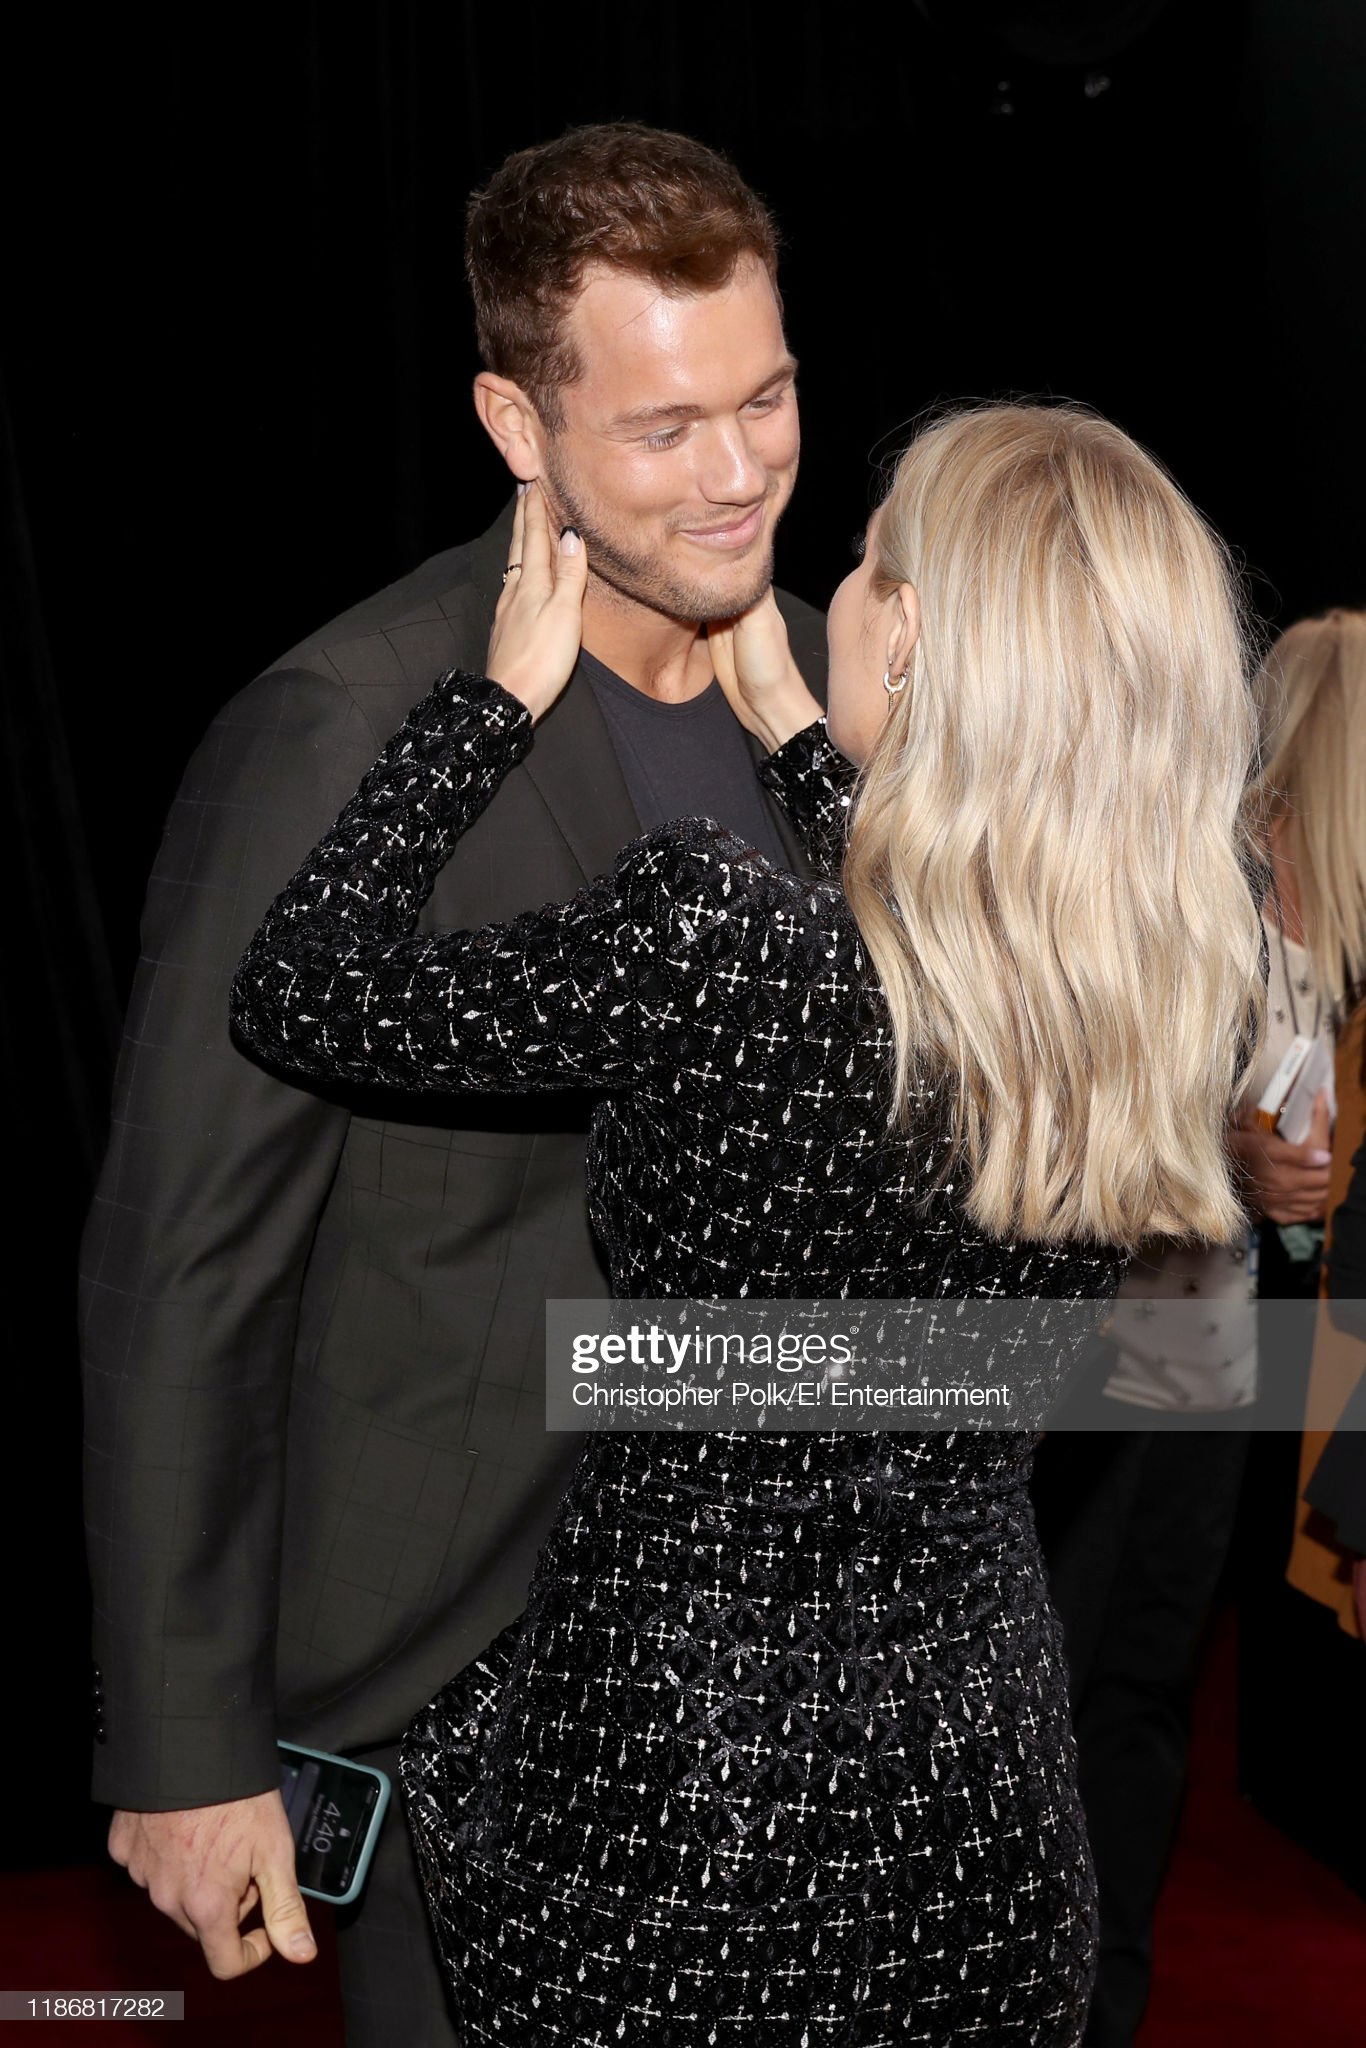 Colton Underwood & Cassie Randolph - Bachelor 23 - Discussion - Page 14 Pictured-colton-underwood-and-cassie-randolph-arrive-to-the-2019-e-picture-id1186817282?s=2048x2048